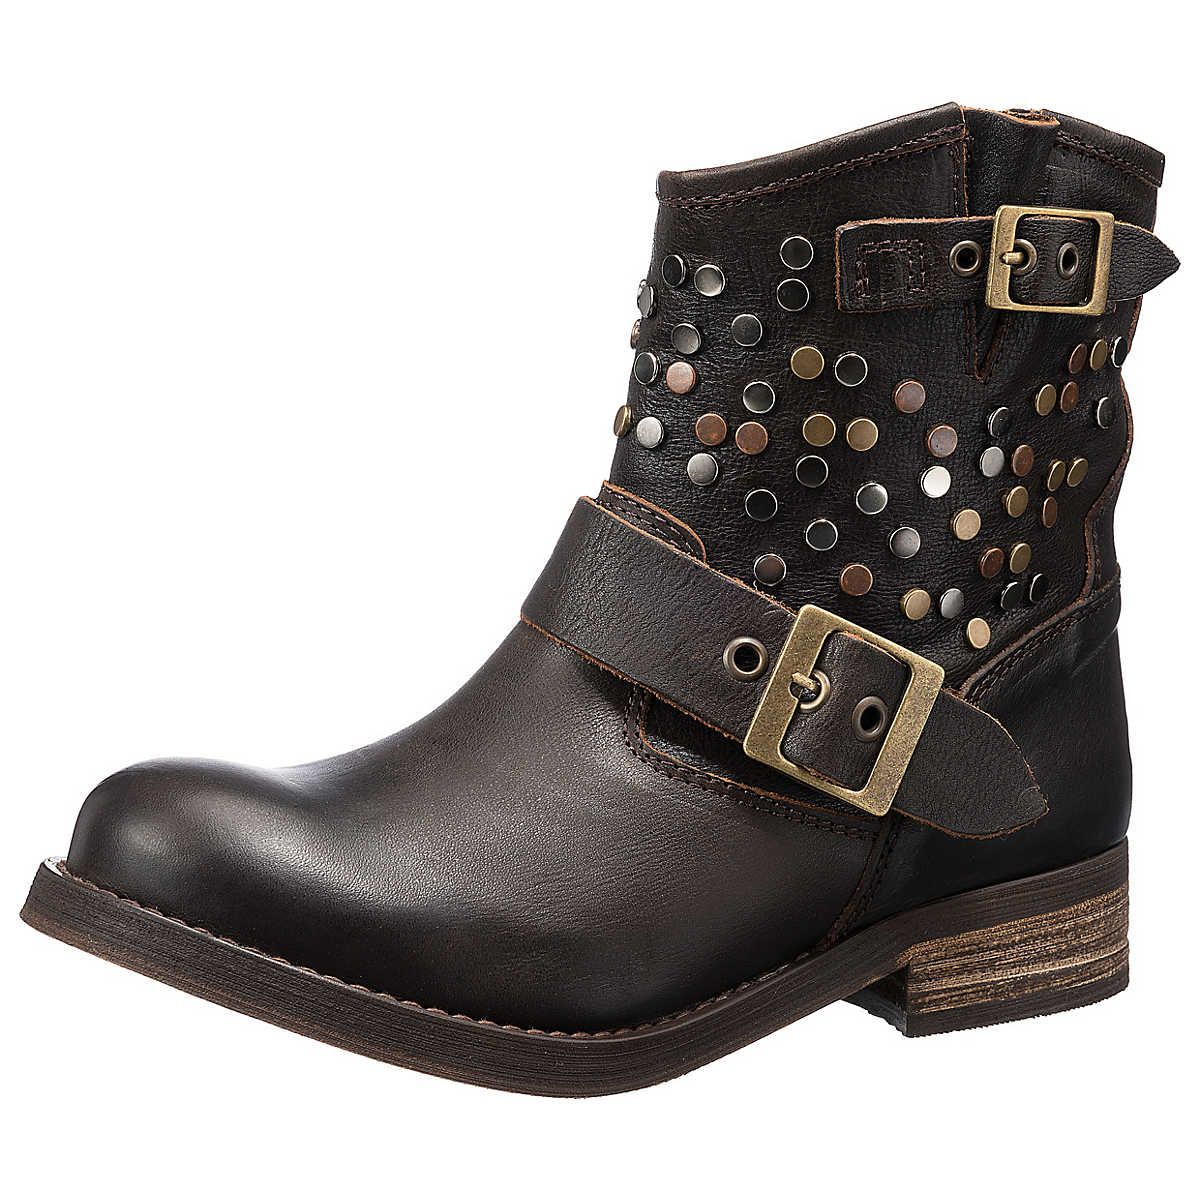 Buffalo BootsFashion SchuheSchuhe Biker Shoes Damen ZPiuOkXT